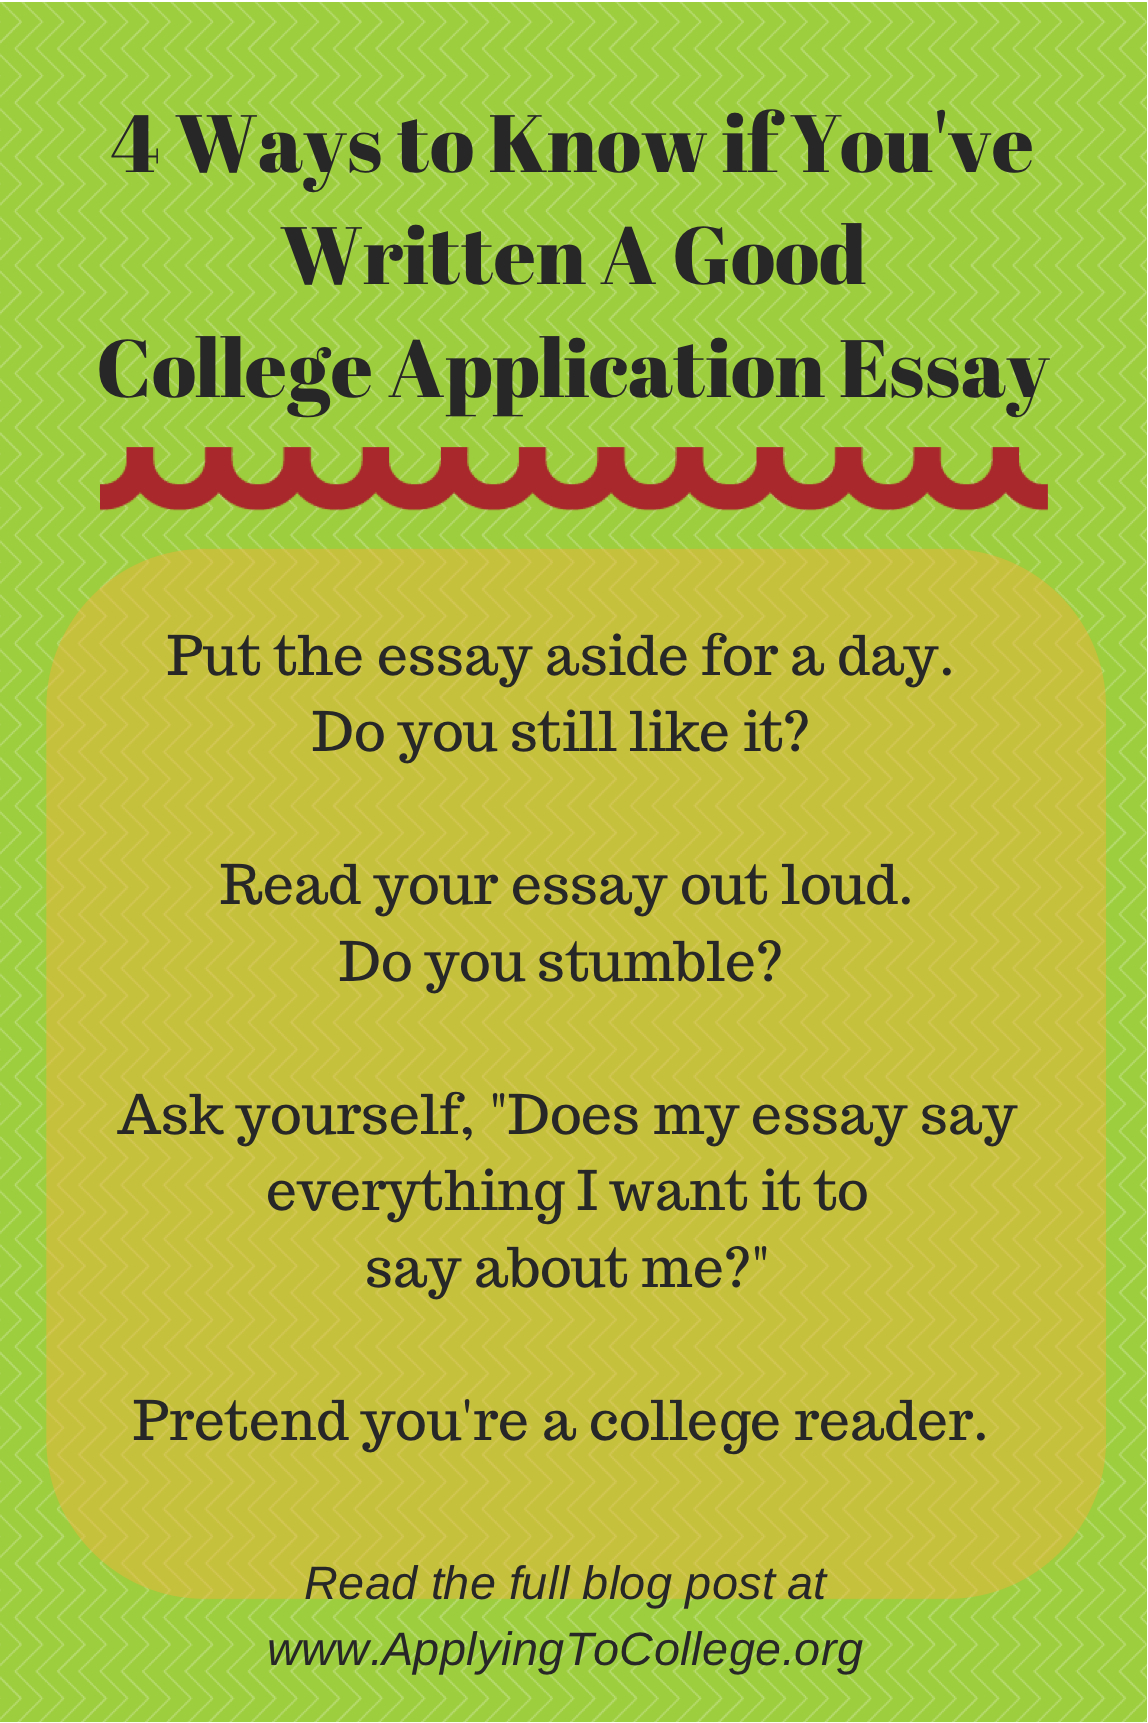 how-to-write-good-college-application-essays-college-admission-essay ...